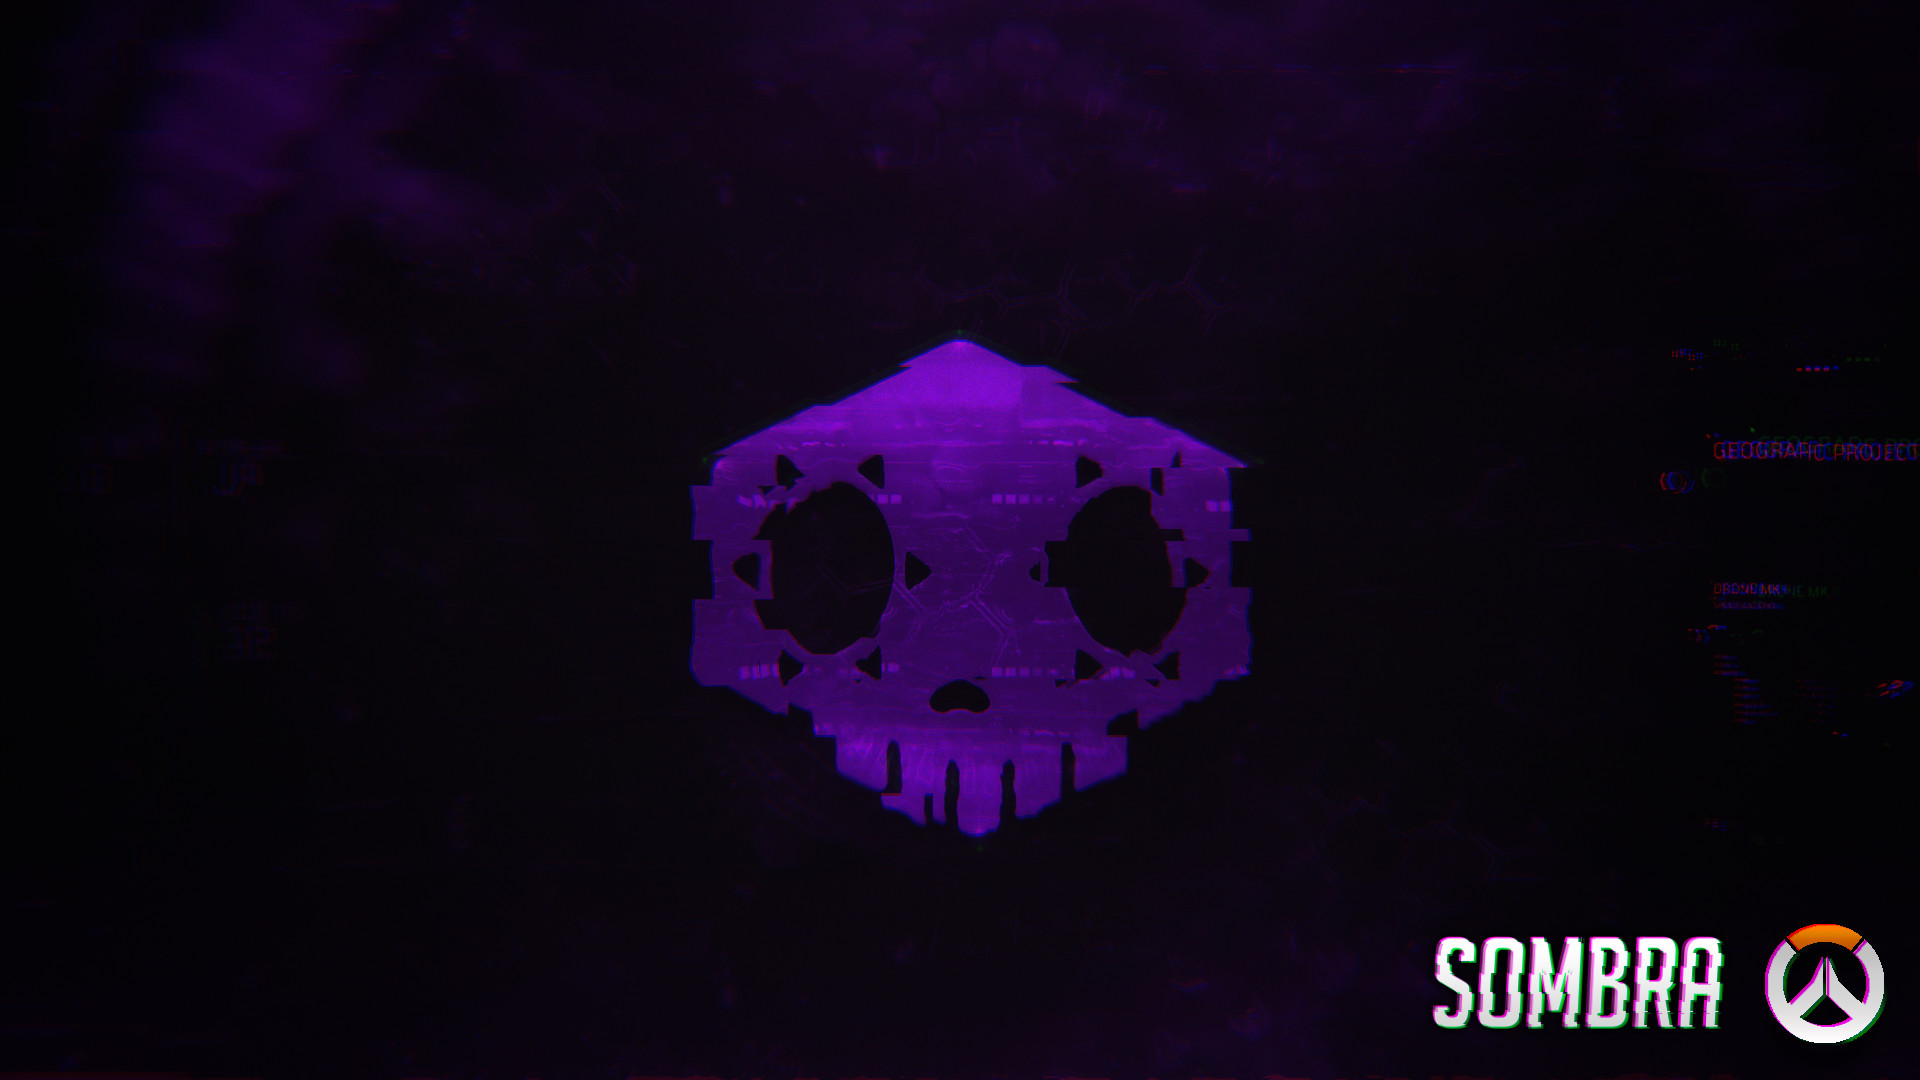 Res: 1920x1080, Sombra Wallpaper HD by xRealMotion Sombra Wallpaper HD by xRealMotion